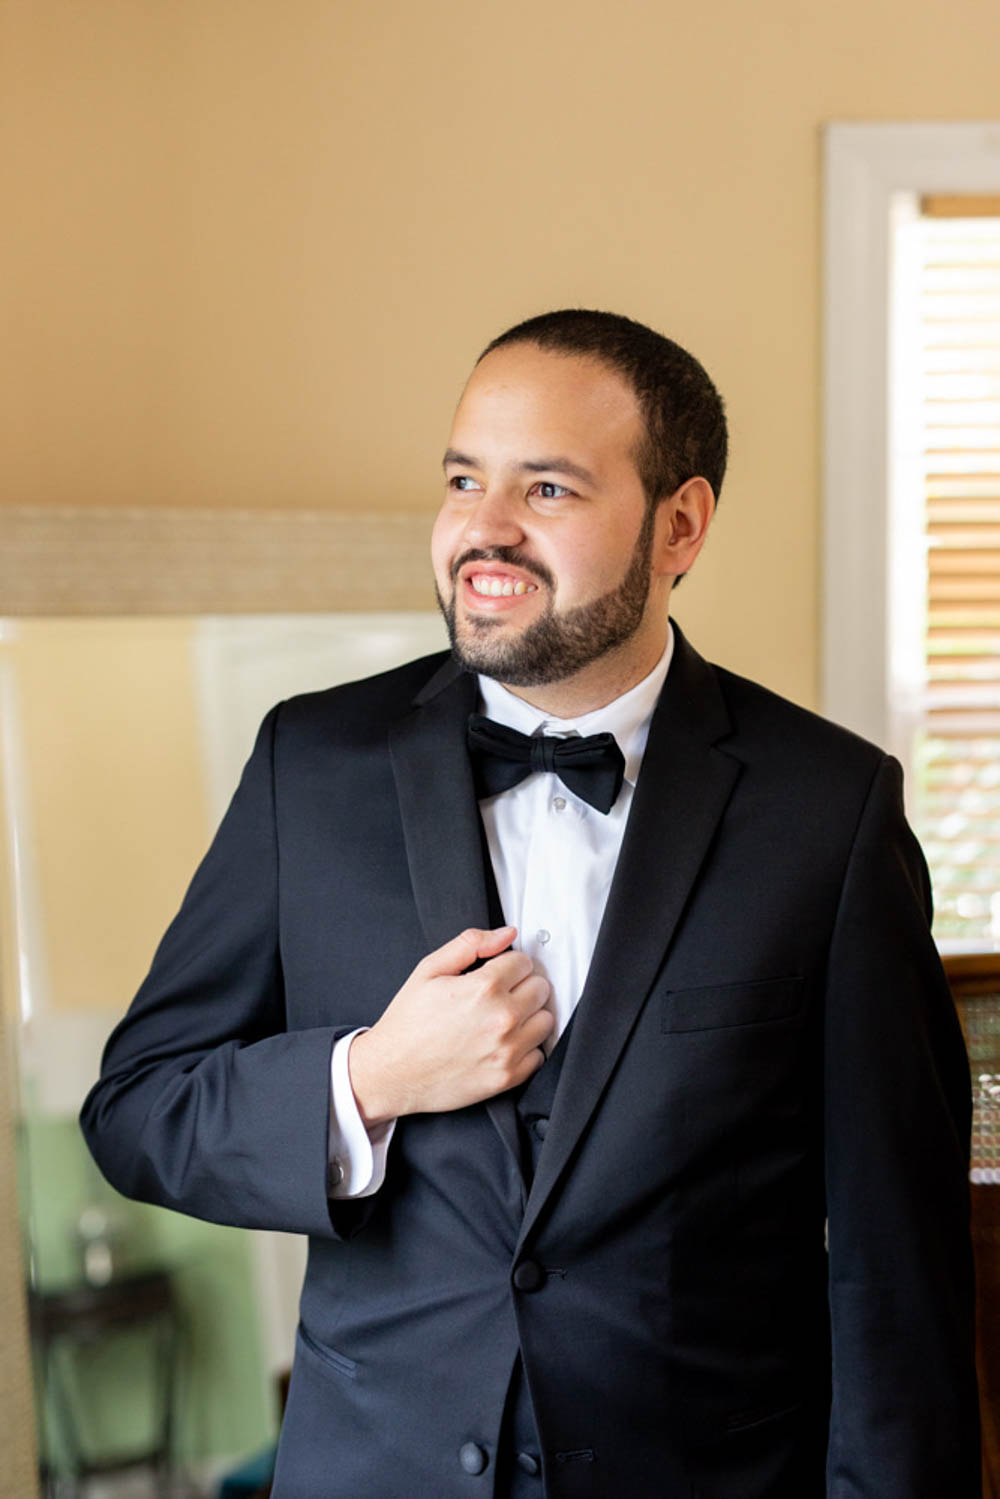 groom in black tux smiling while looking out of window